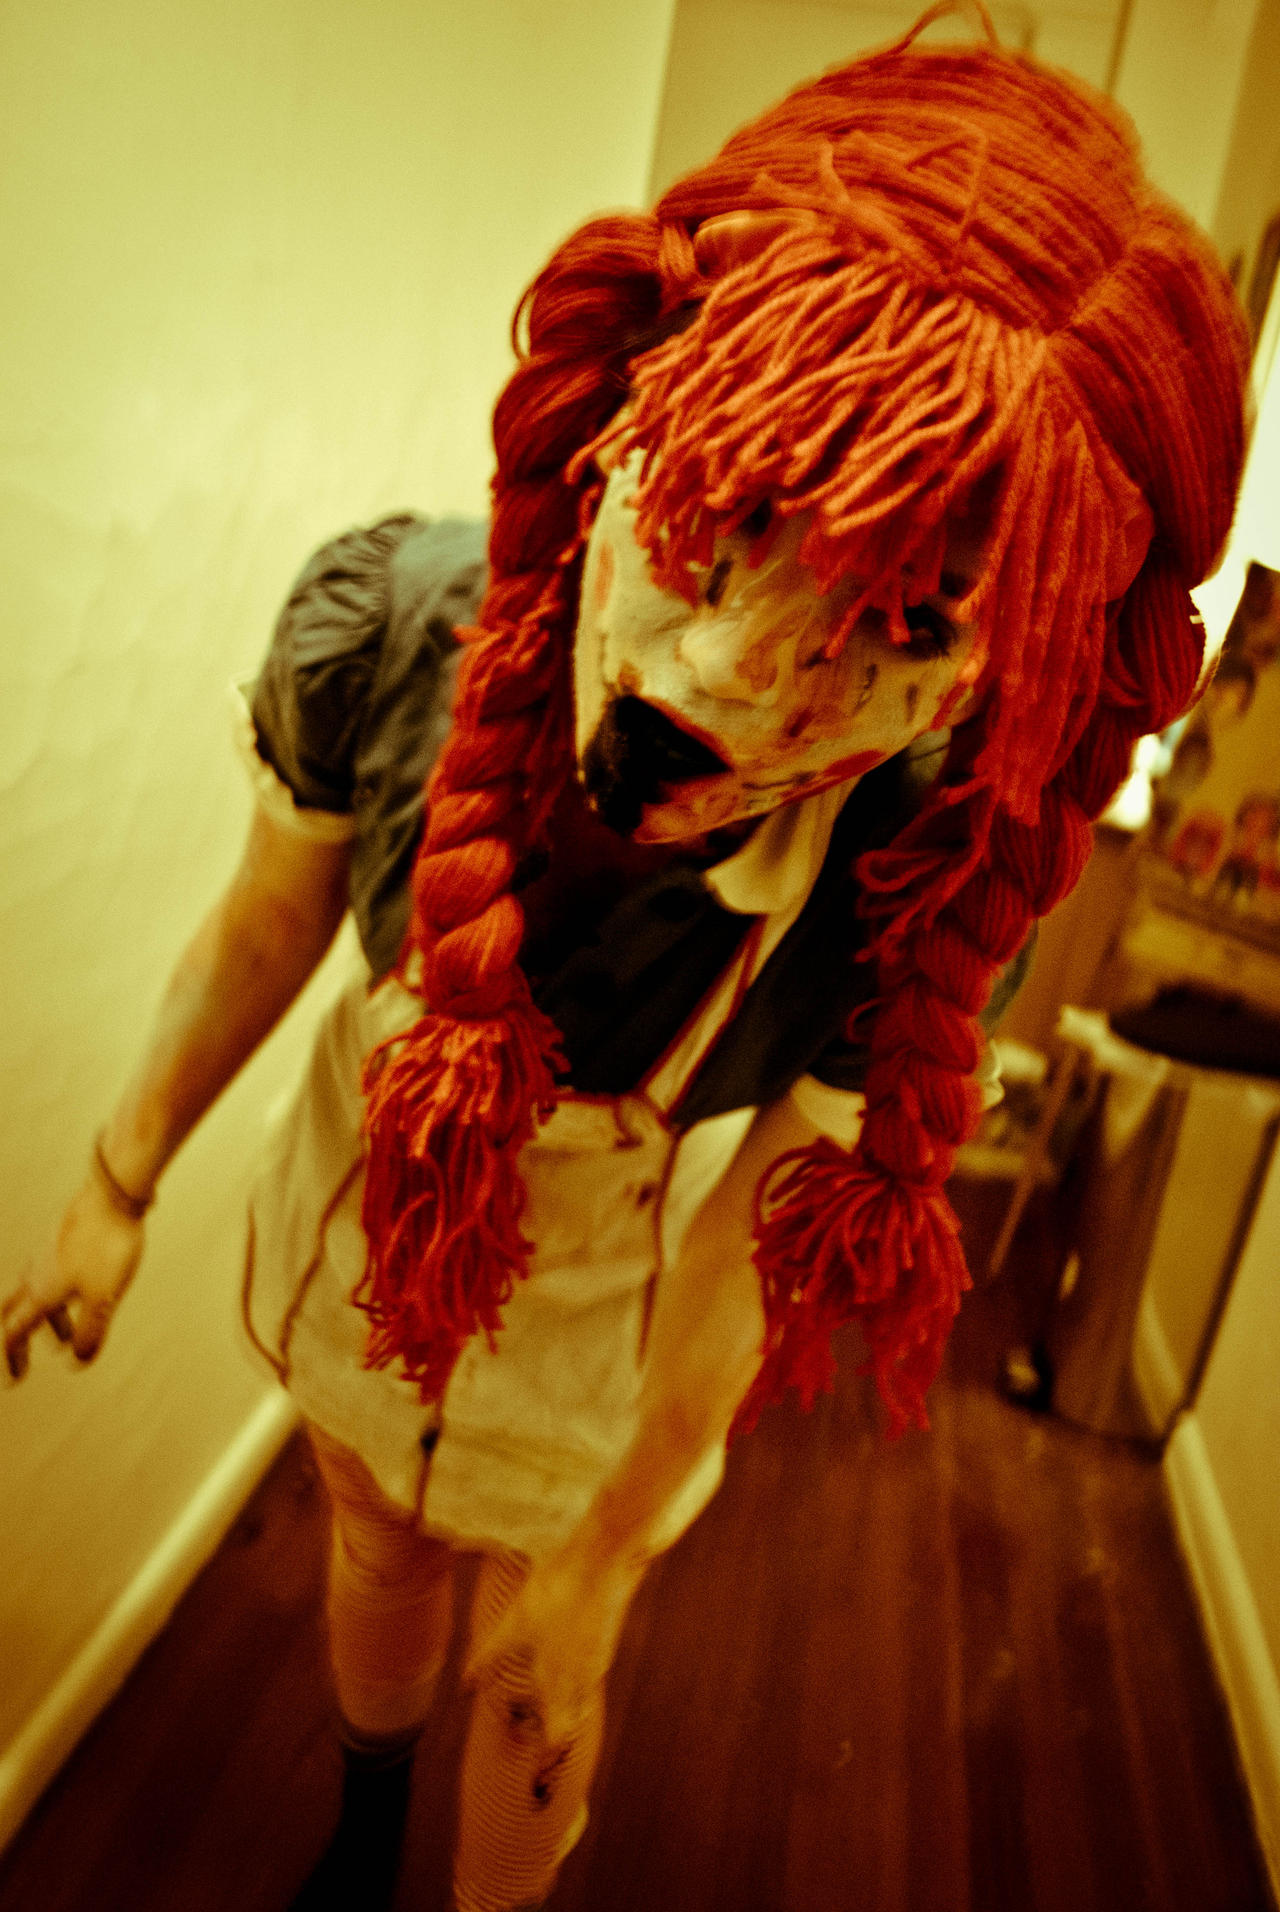 raggedy ann zombie by frozen intime on deviantart